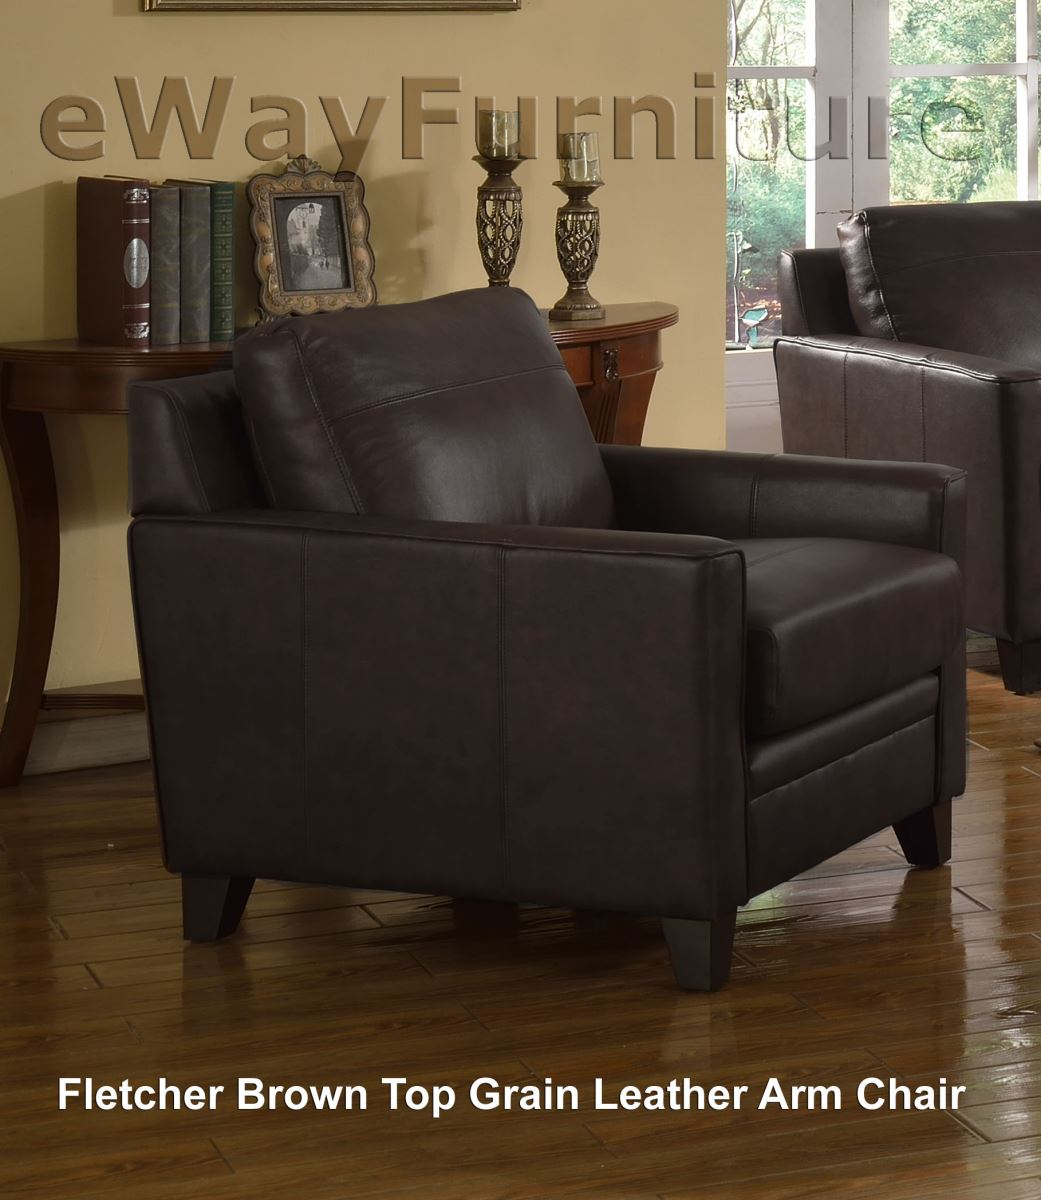 Fletcher Brown Top Grain Leather Sofa